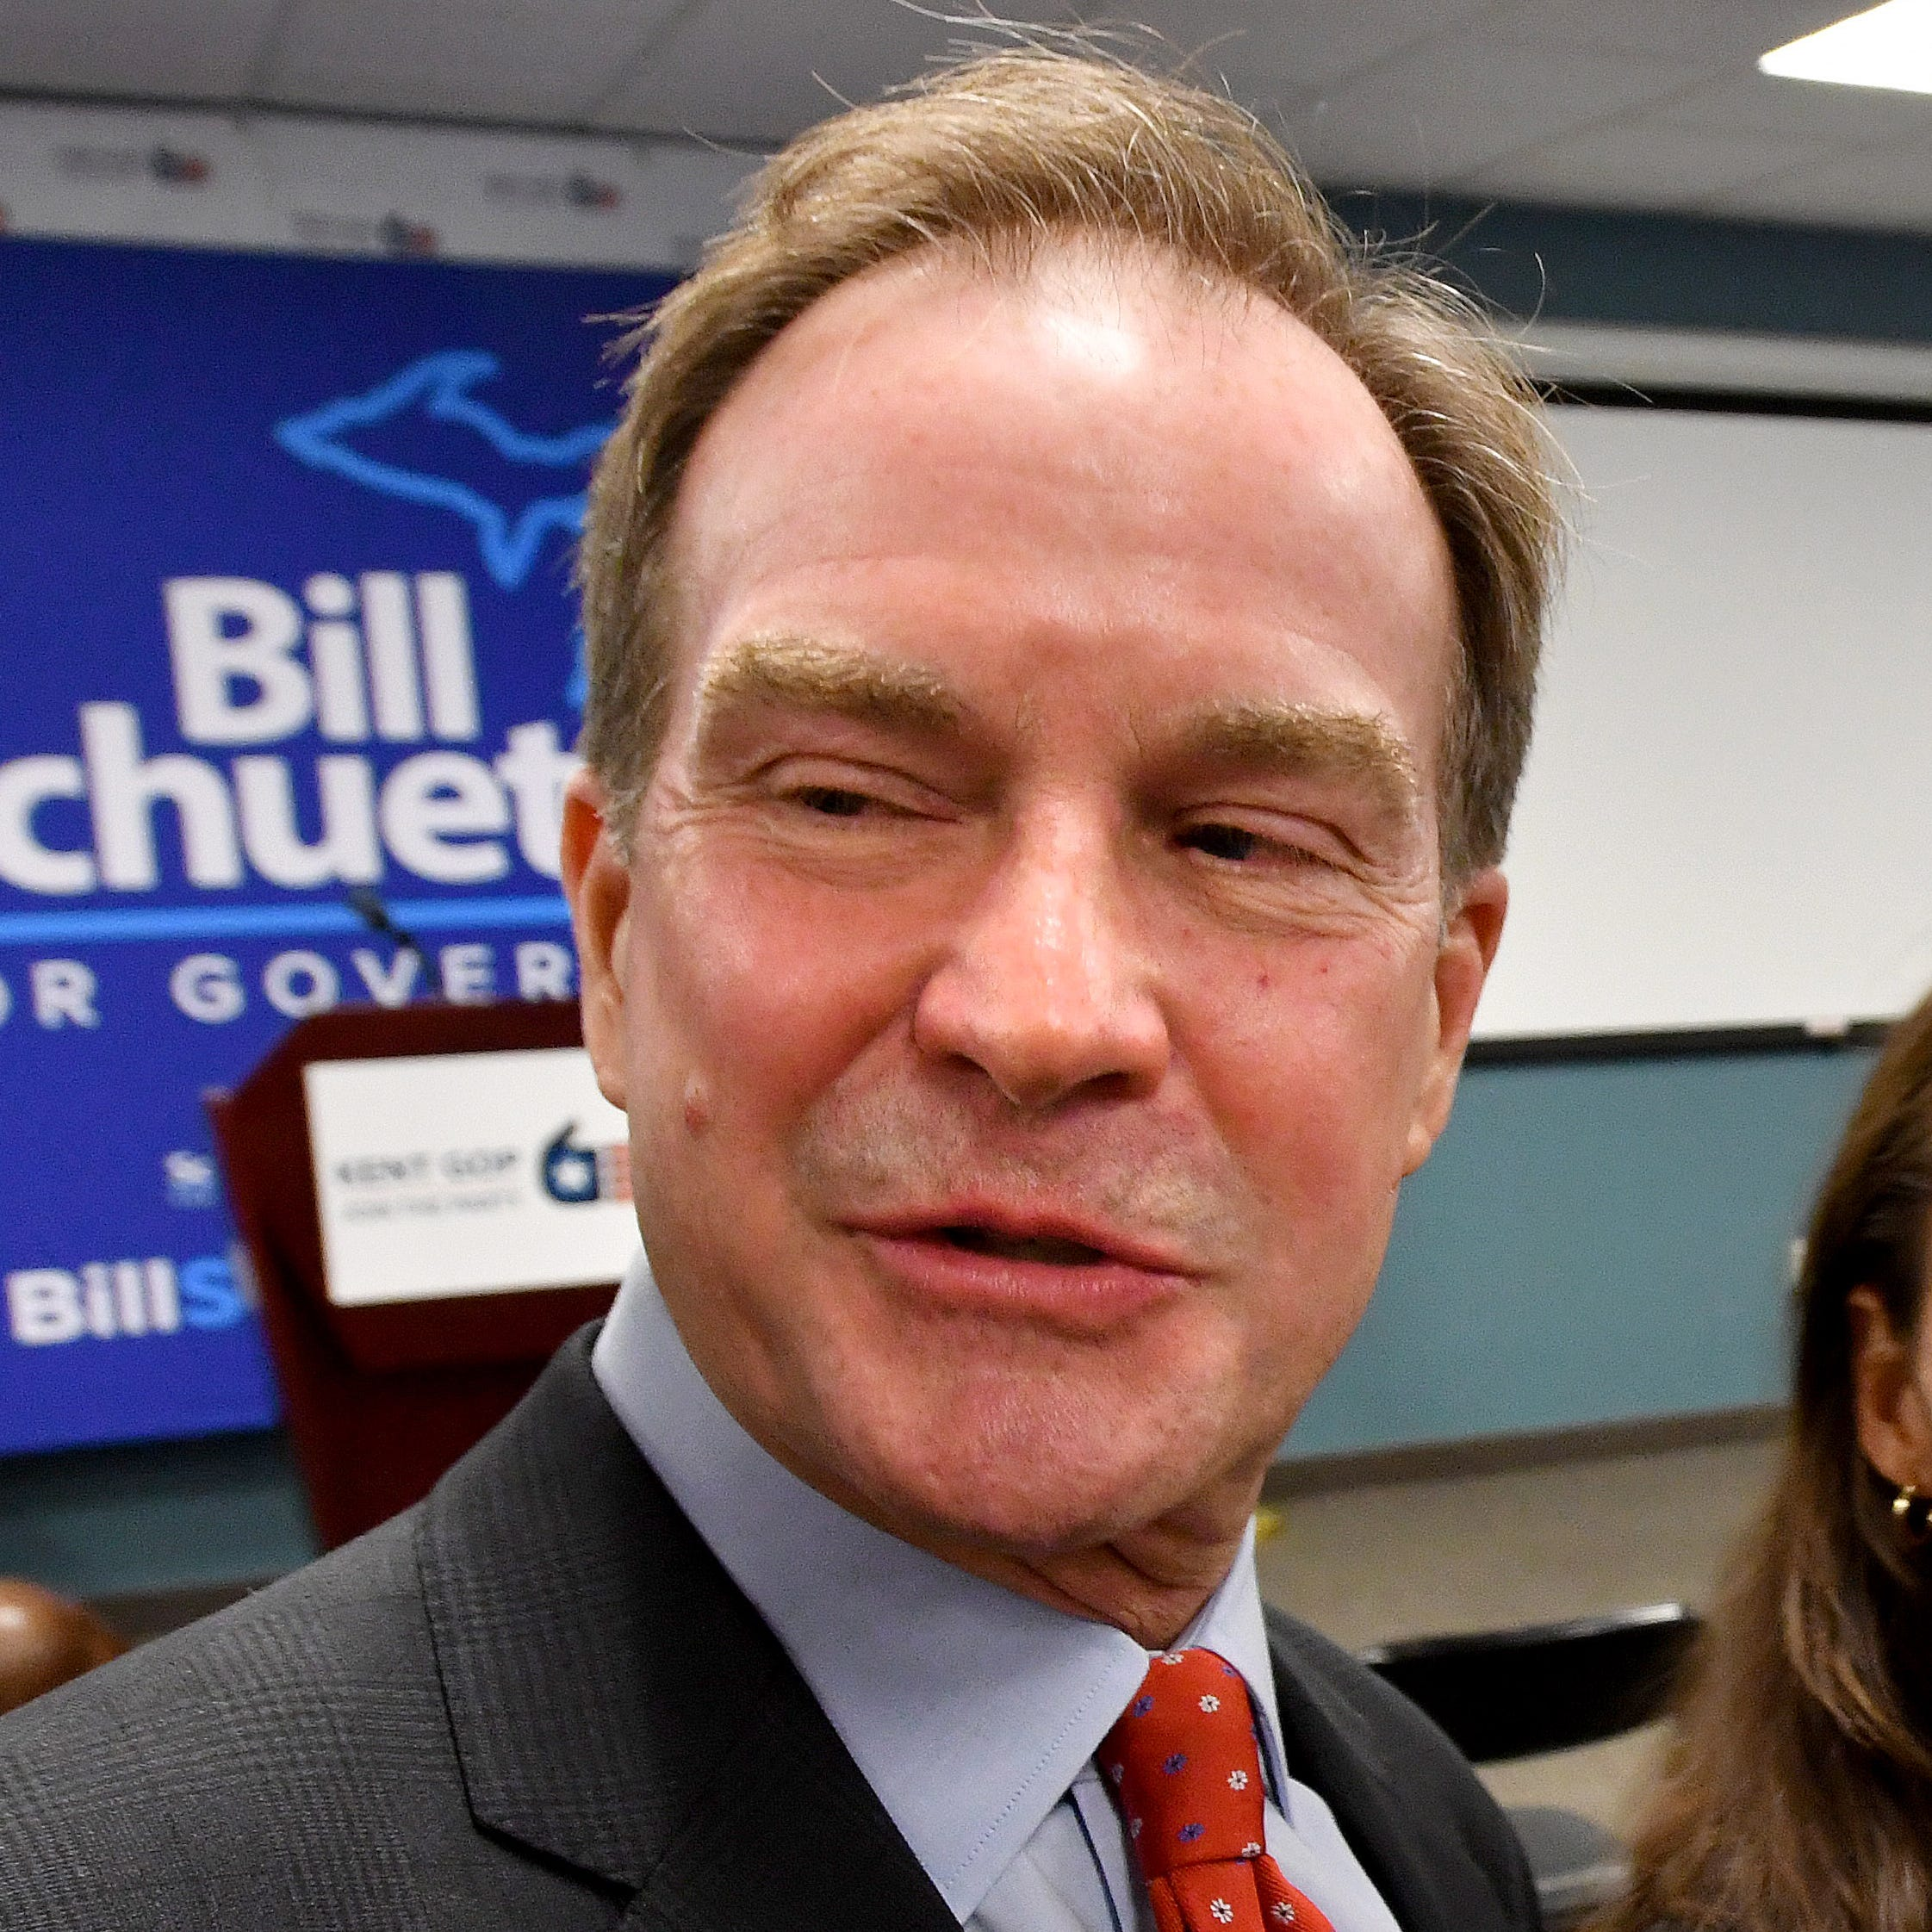 Schuette runs into unusual opponents in bid for governor